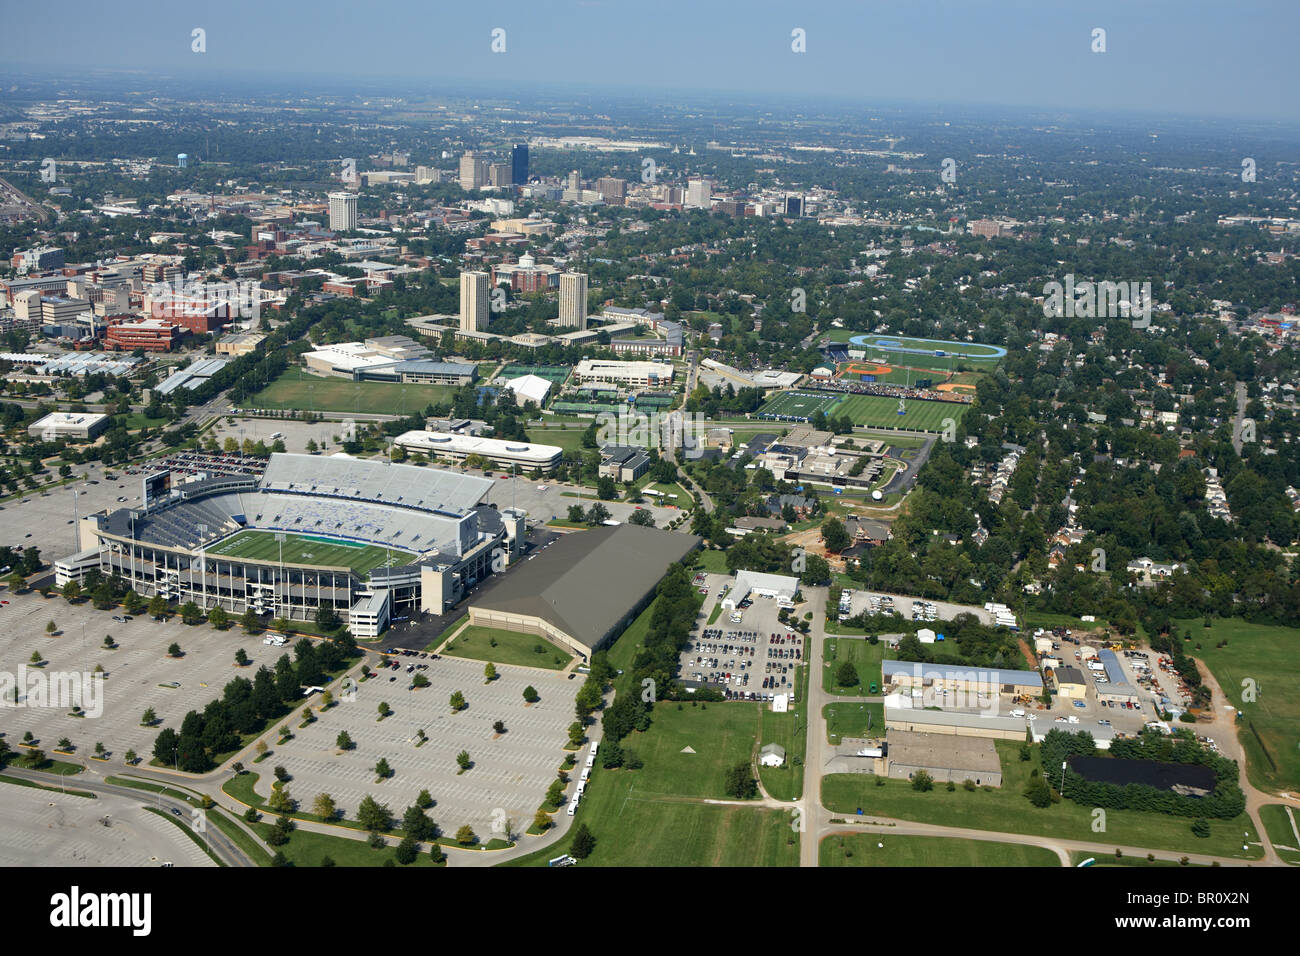 The University Of Kentucky And: Aerial View Of Some Of The University Of Kentucky Campus